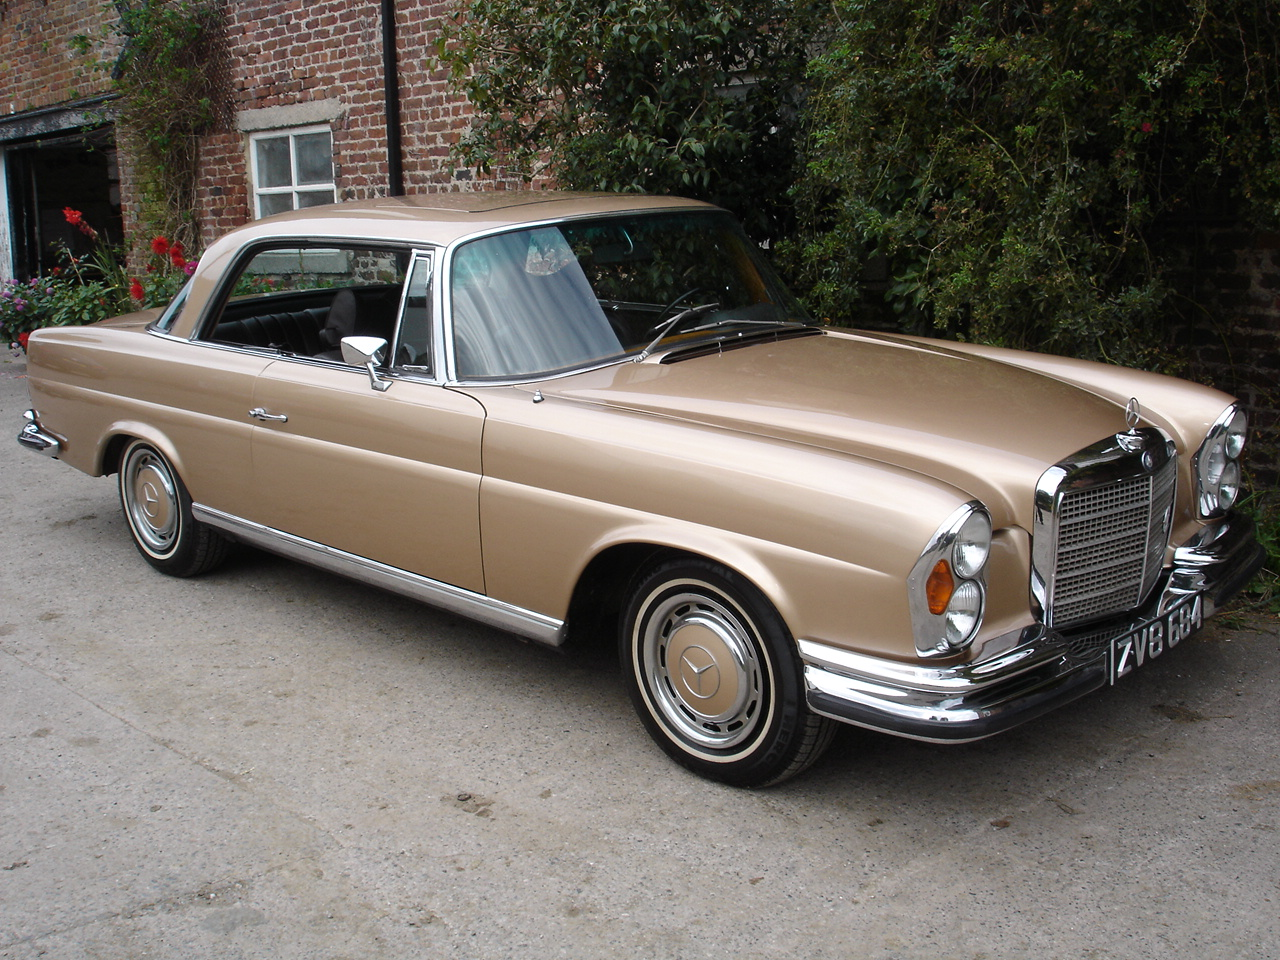 280se coupe 2 8 litre 6 cyl lhd 1969g sold cheshire for Old mercedes benz models